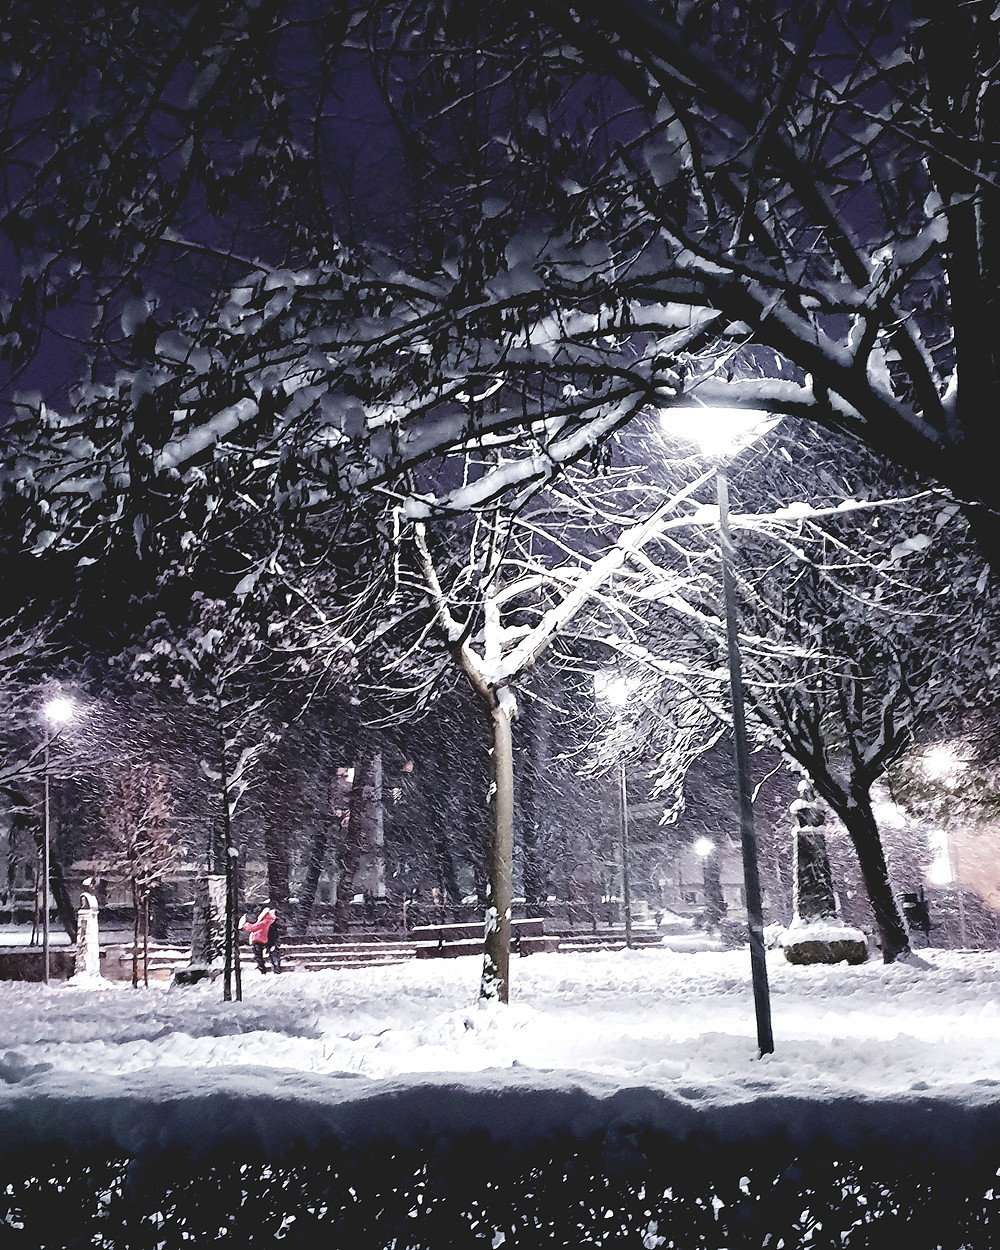 Snow in the park - Photo by Mary Samou